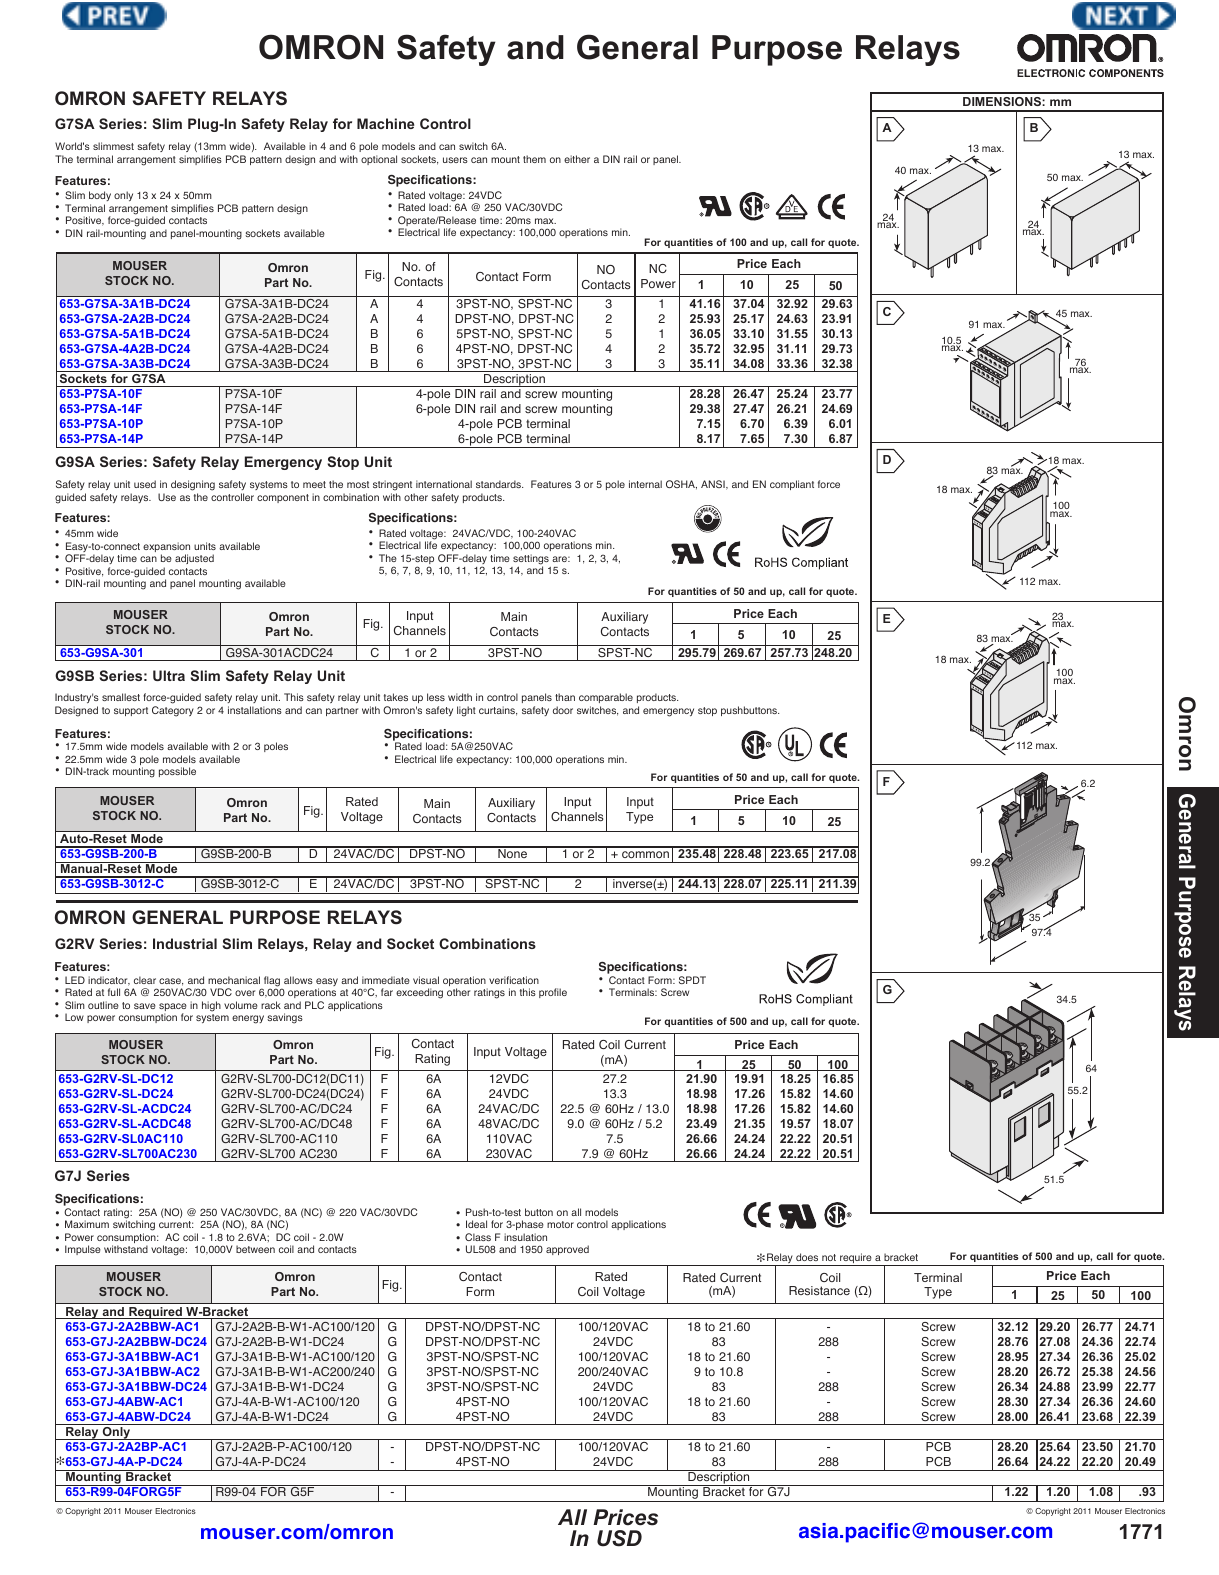 OMRON Safety and General Purpose Relays on